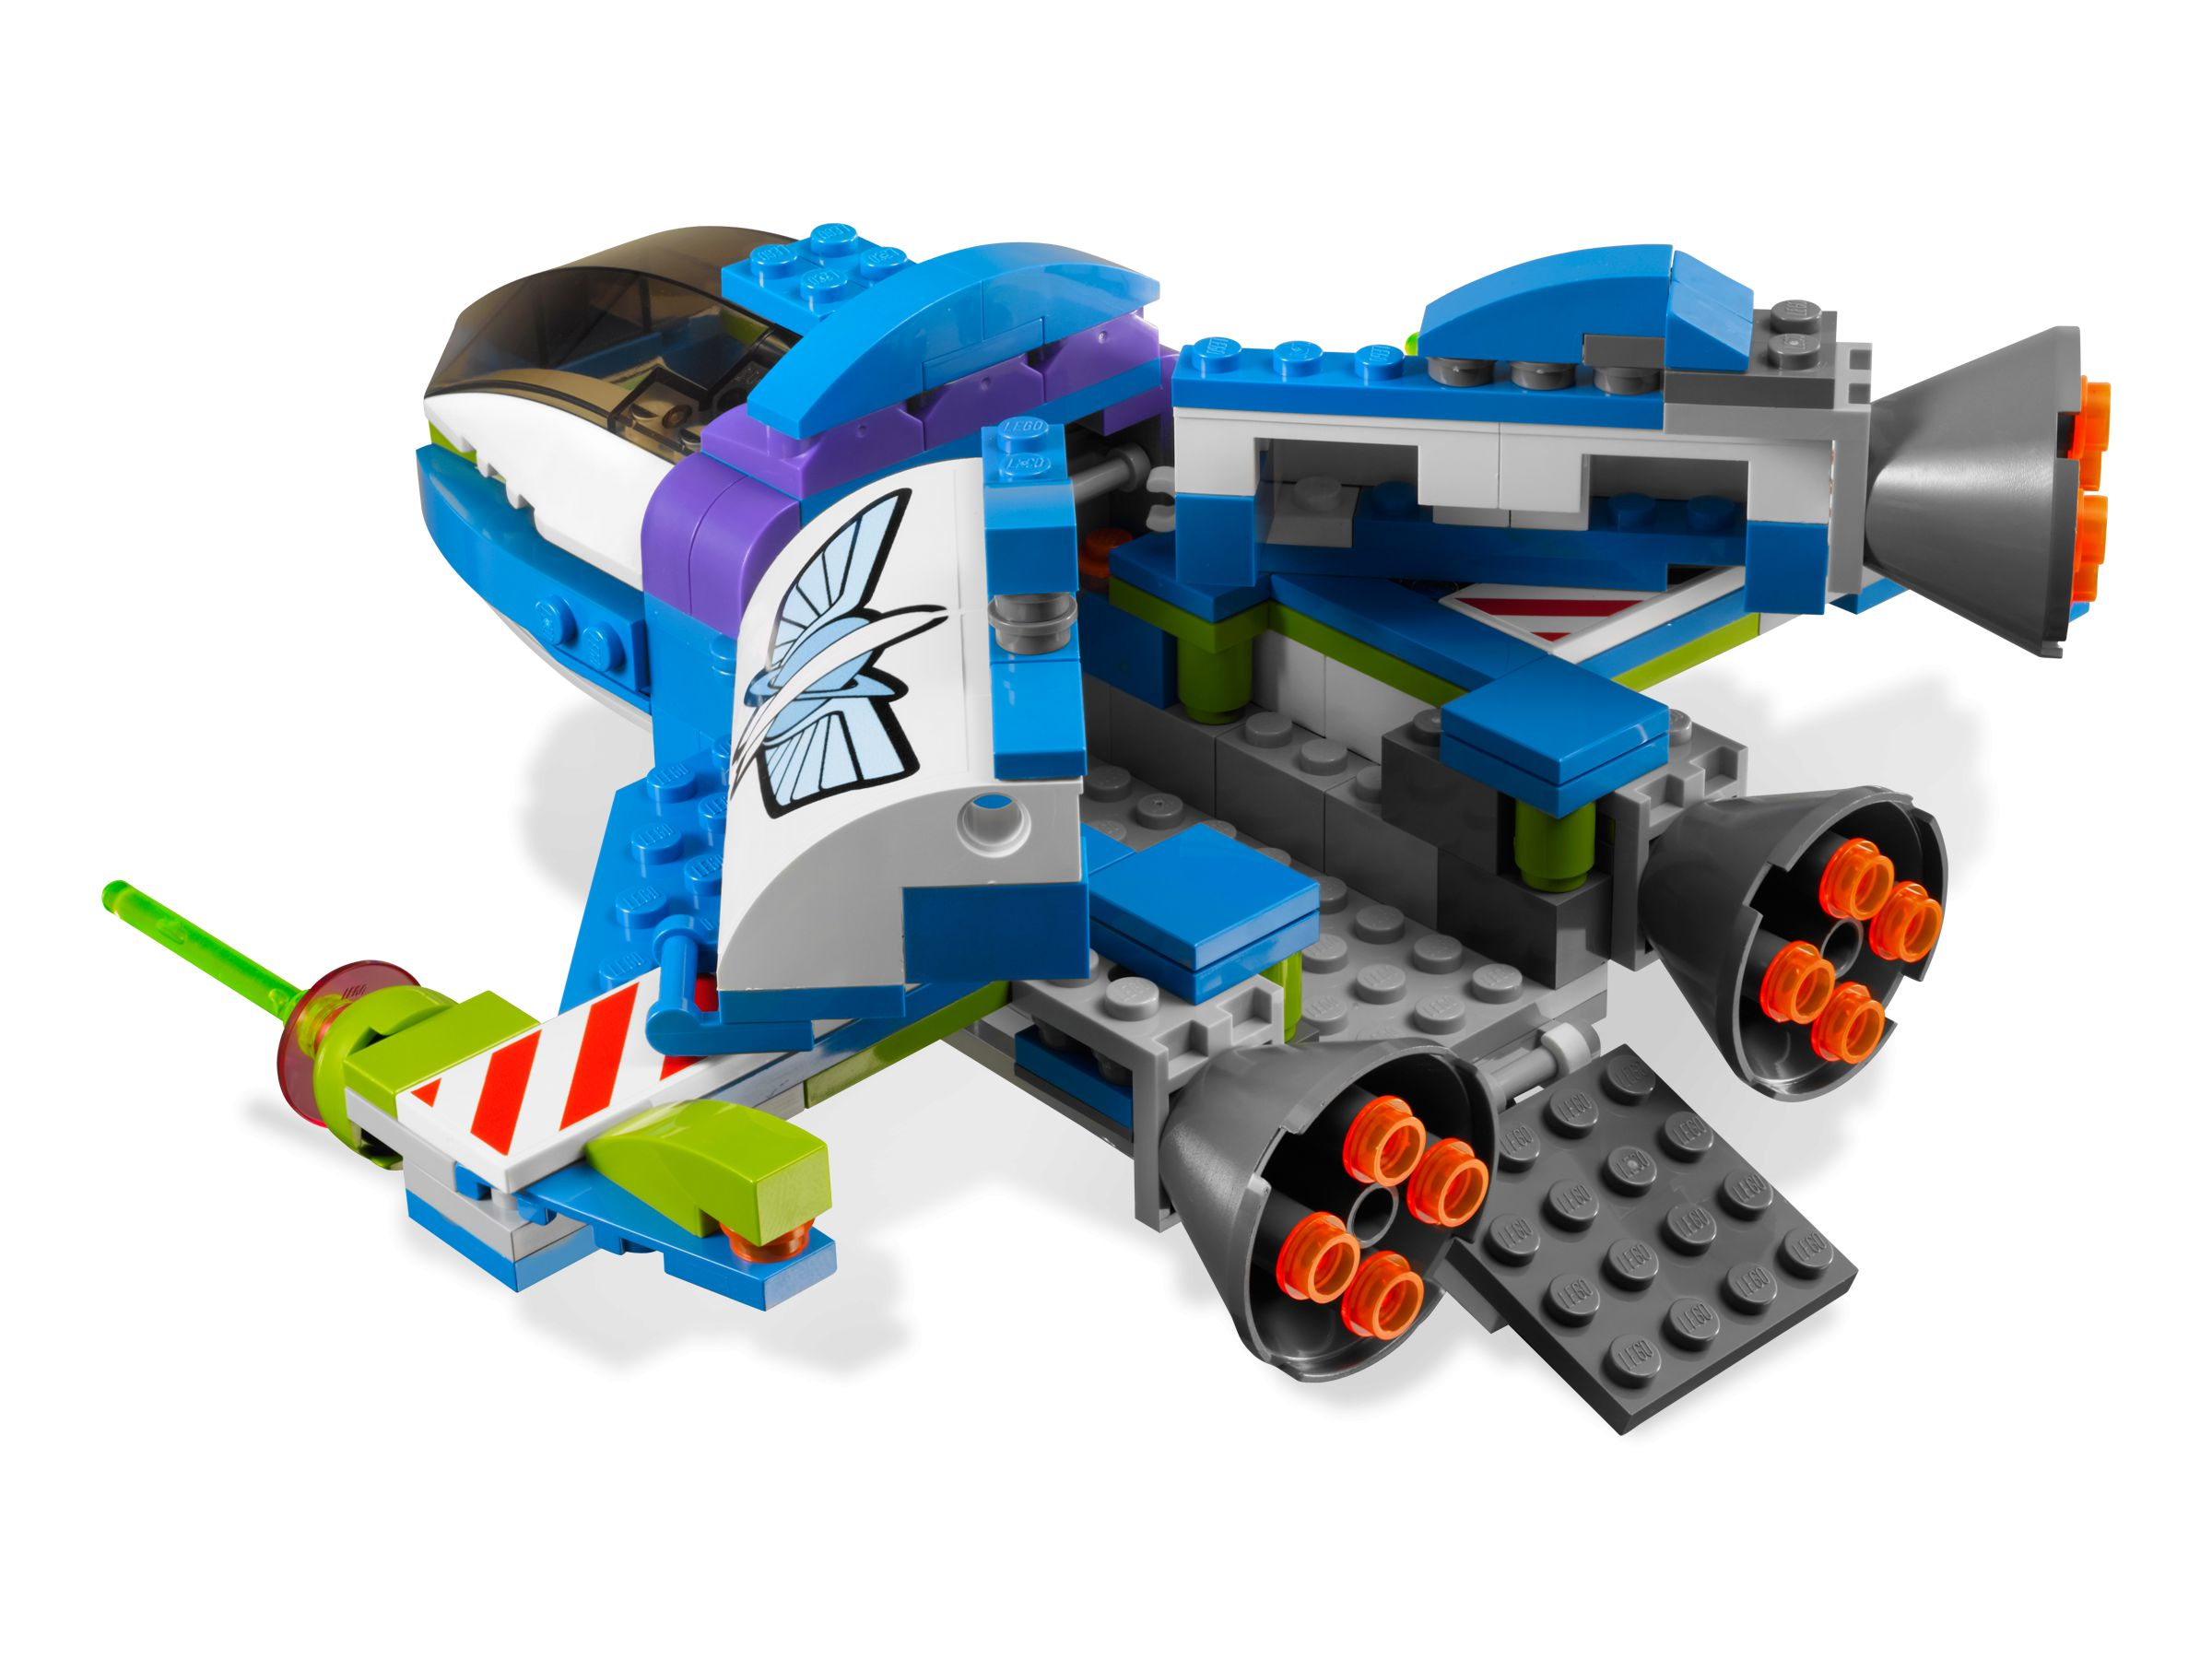 LEGO Toy Story 7593 Buzz's Star Command Spaceship LEGO_7593_alt4.jpg